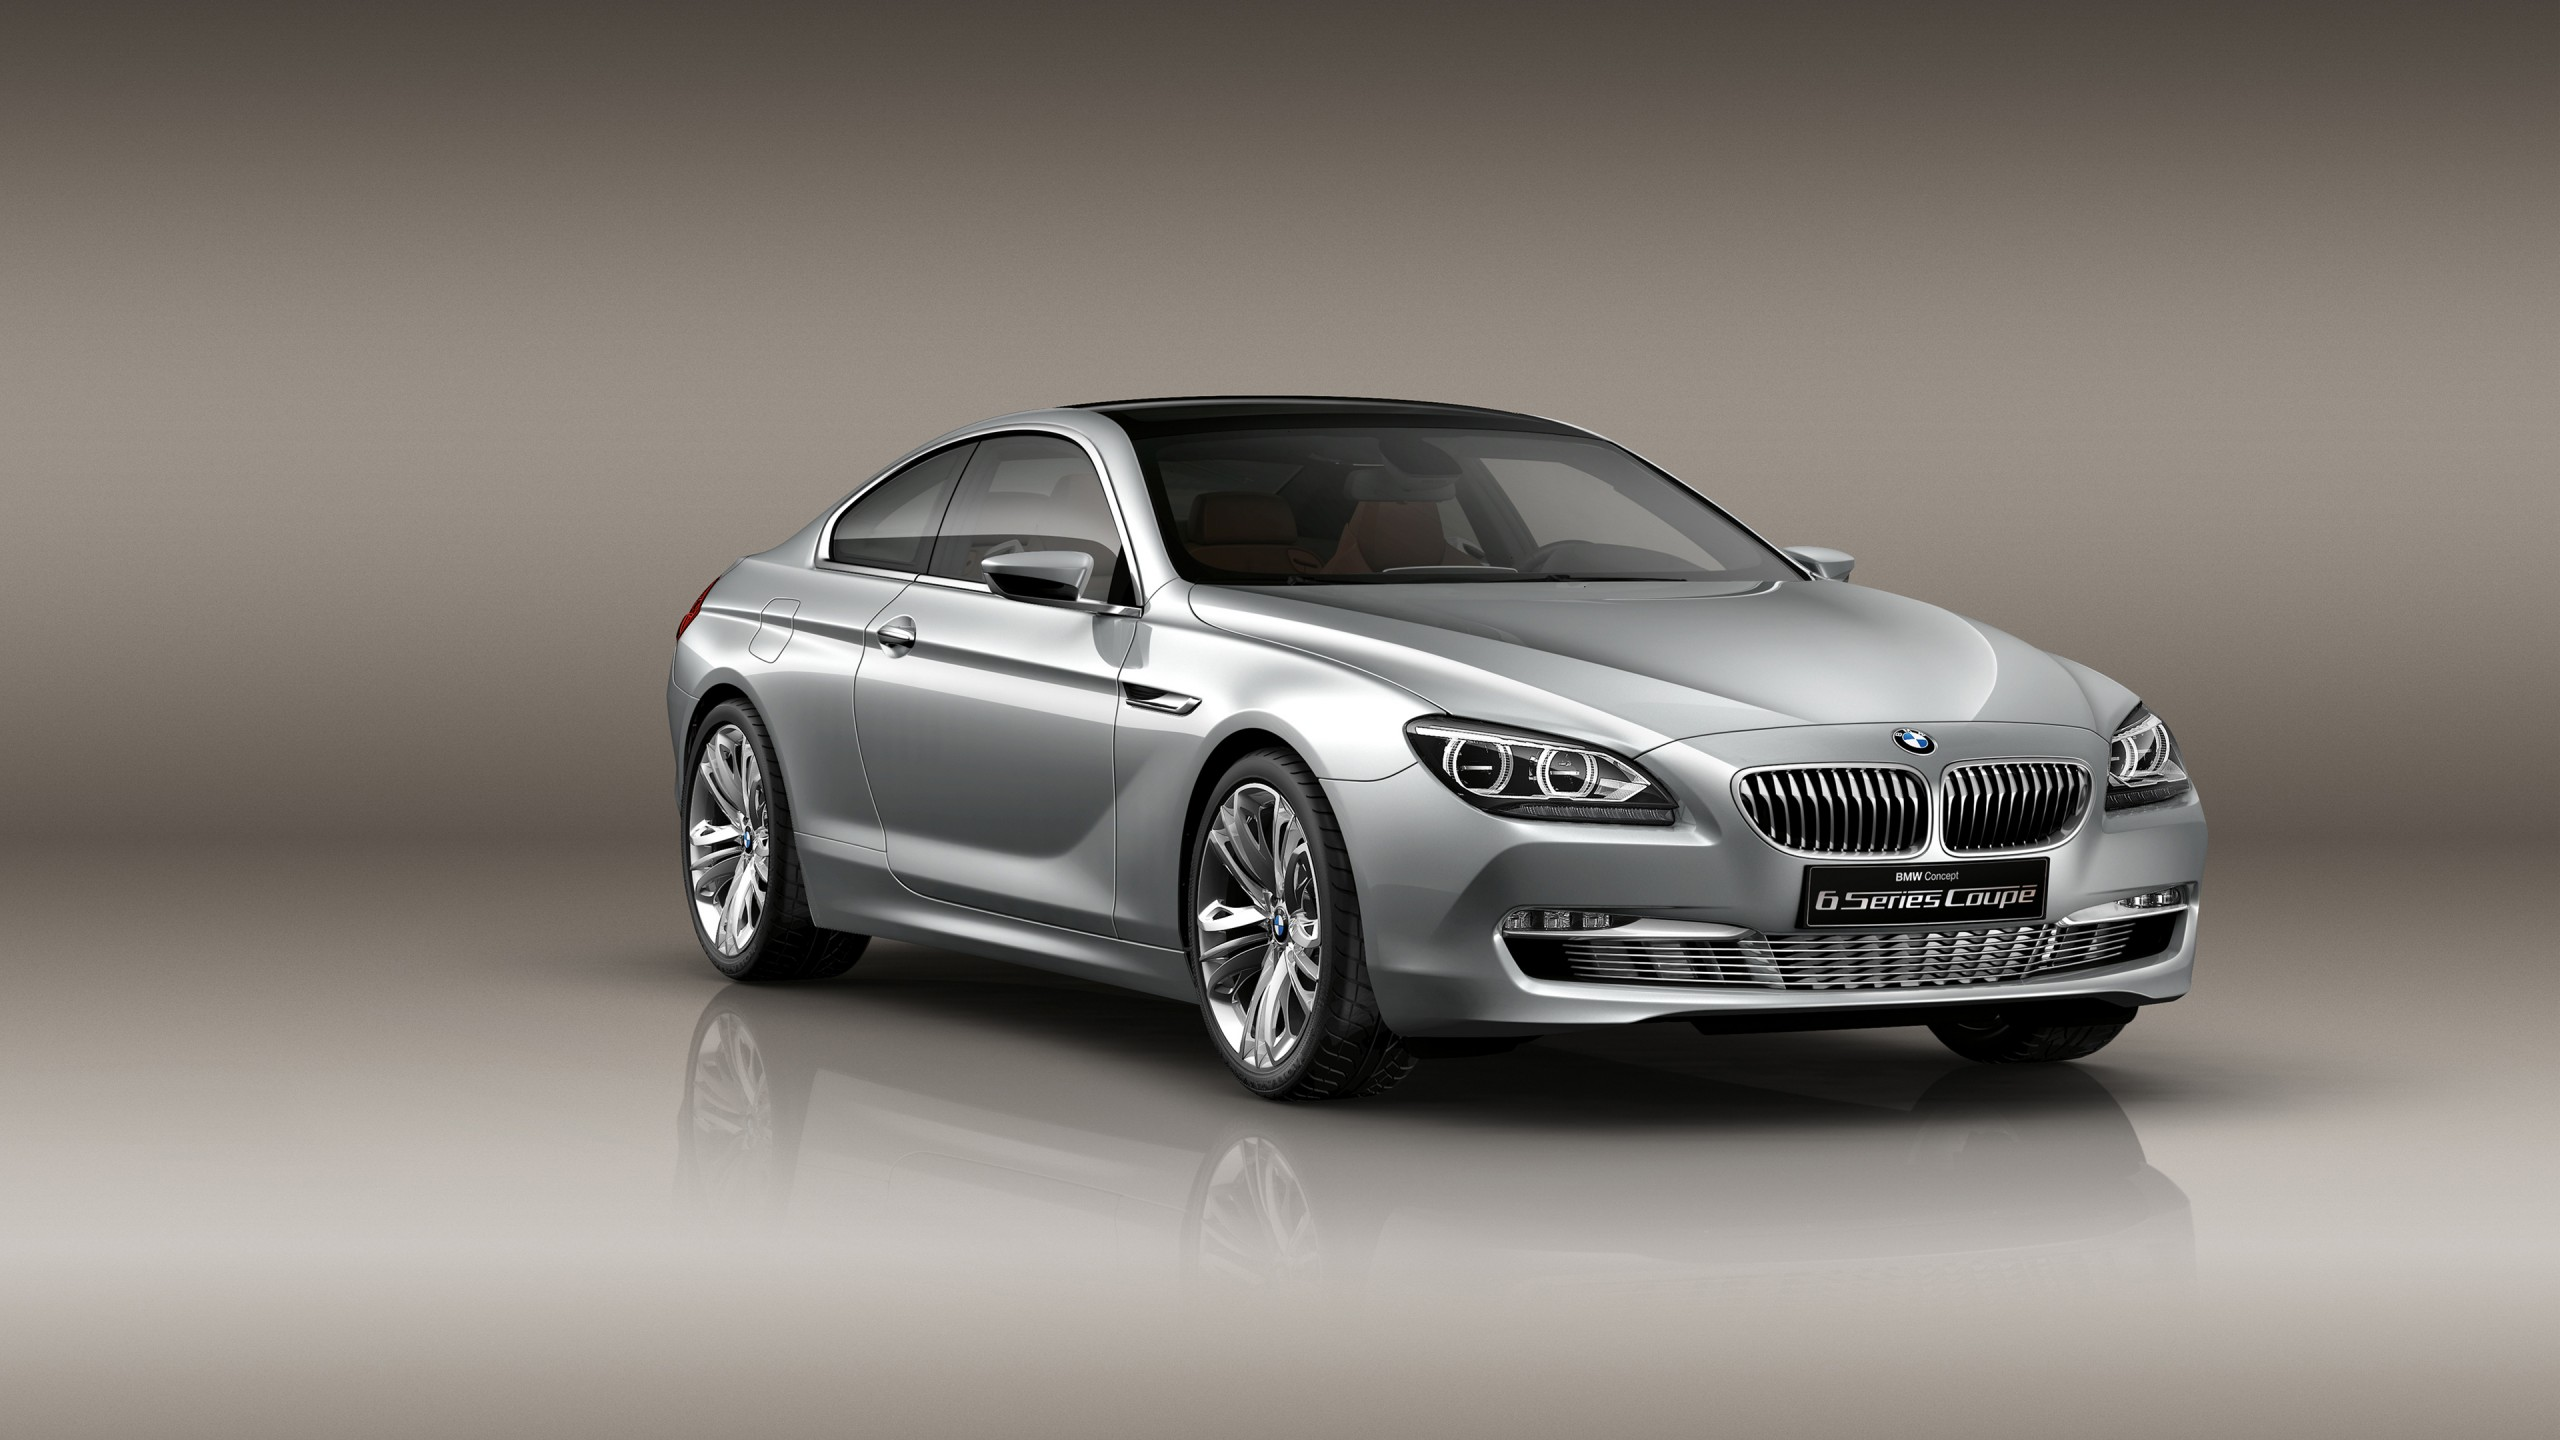 2017 BMW 6 Series Wallpaper | HD Car Wallpapers